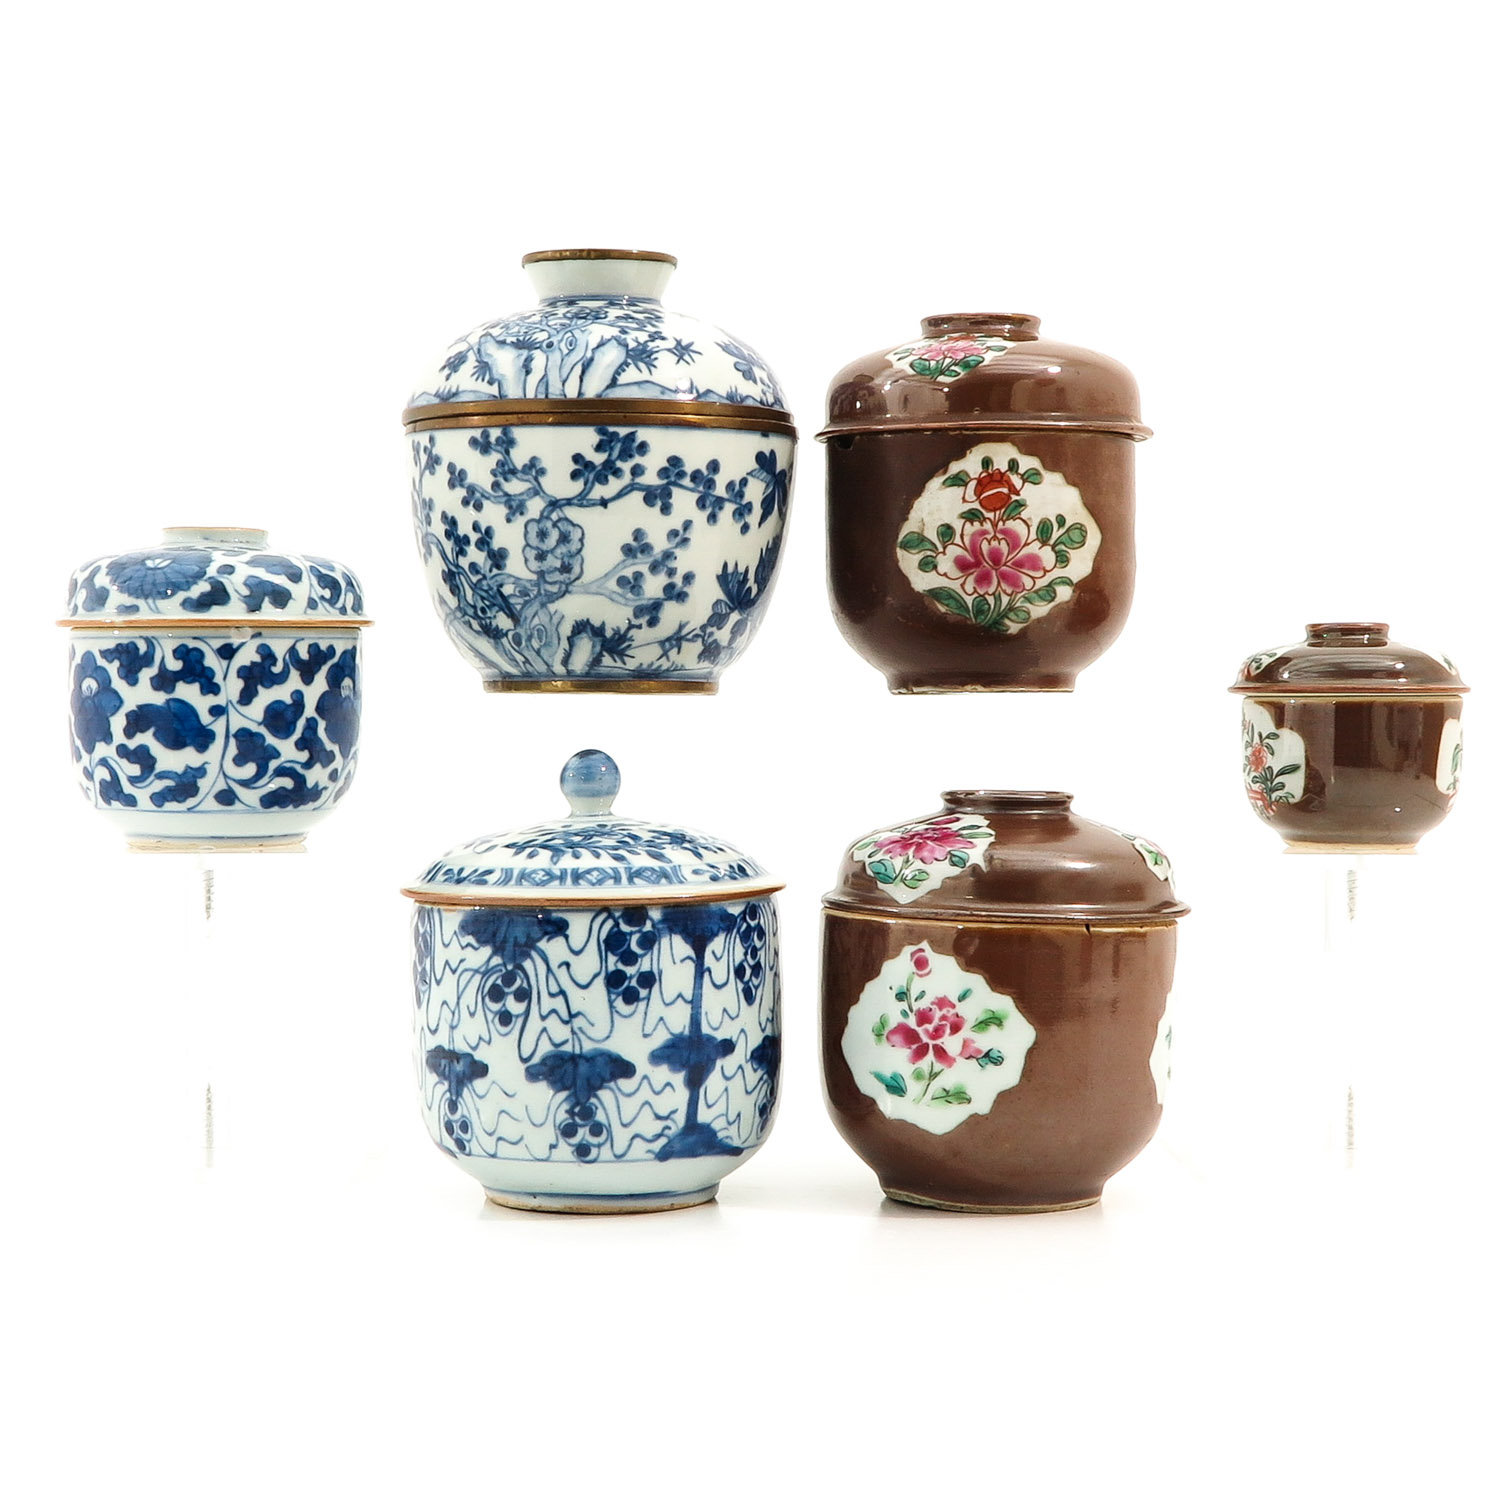 A Collection of Jars with Covers - Image 4 of 10